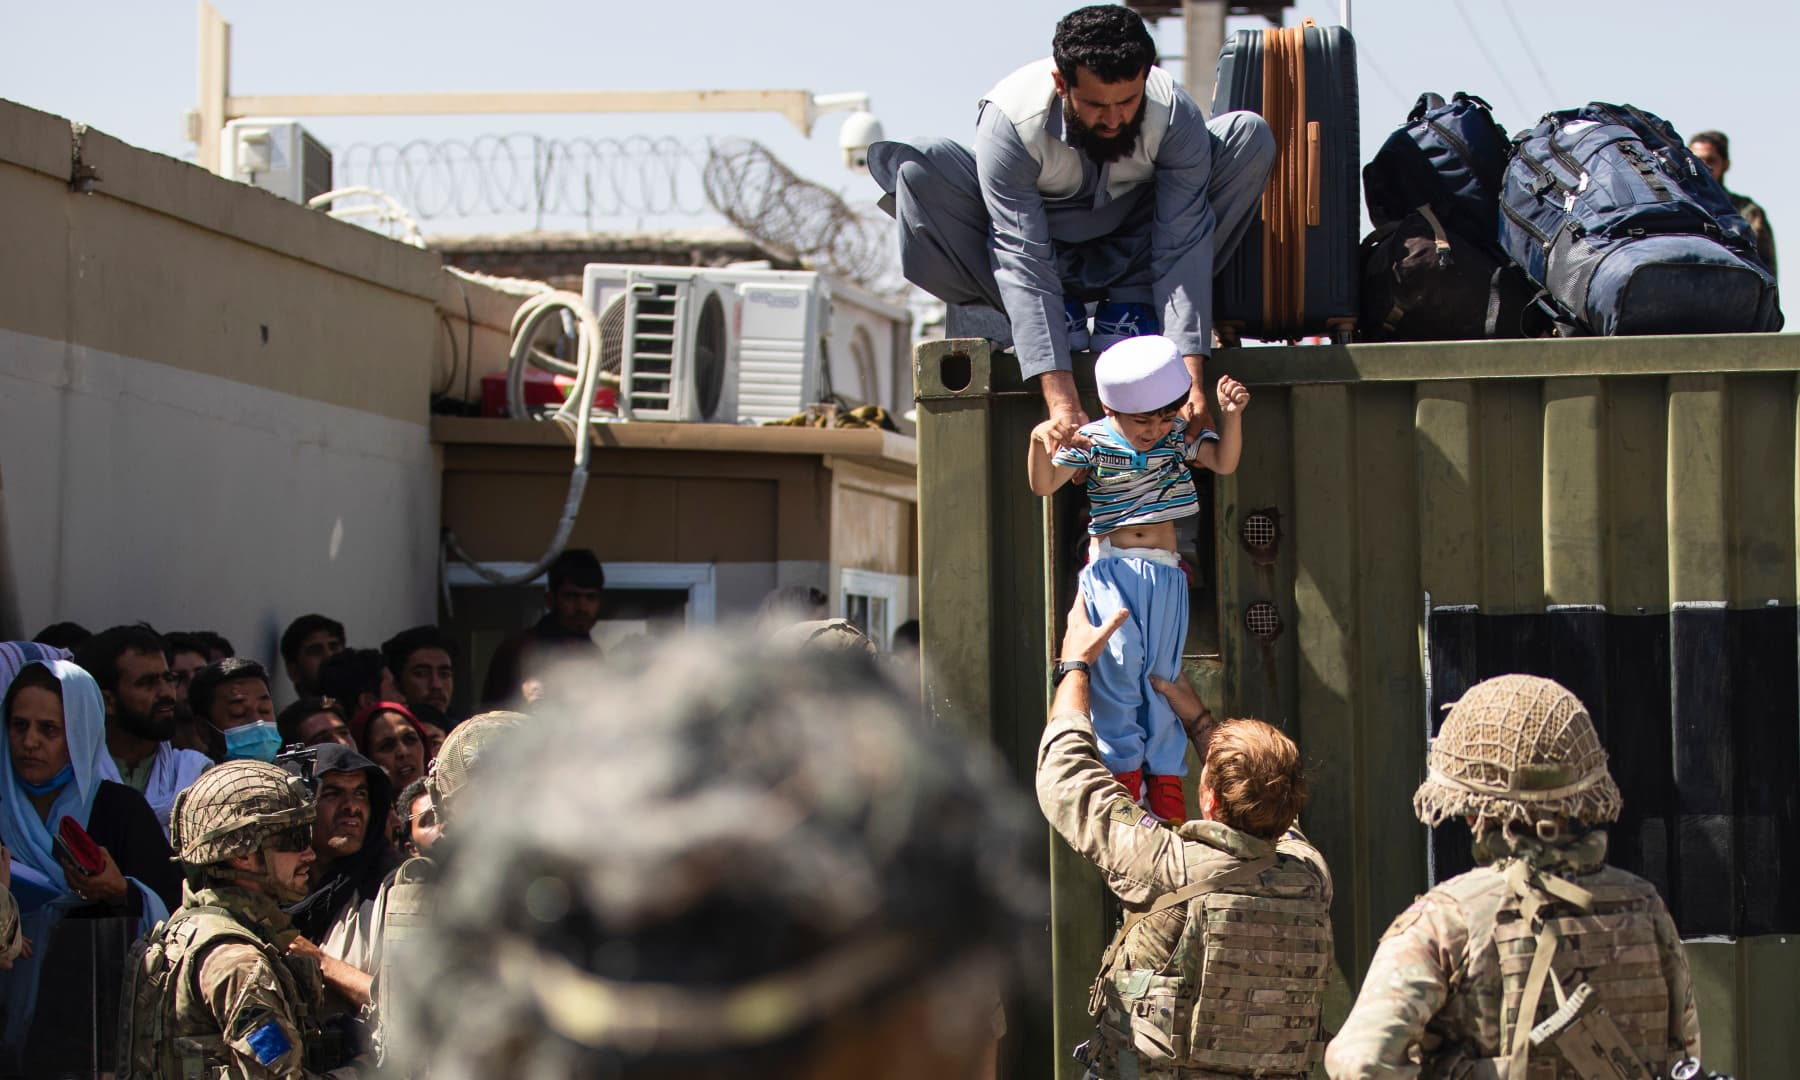 An Afghan man hands his child to a British Paratrooper assigned to 2nd Battalion, Parachute Regiment while a member of 1st Brigade Combat Team, 82nd Airborne Division conducts security at Hamid Karzai International Airport in Kabul, Afghanistan on August 26, 2021. — AP